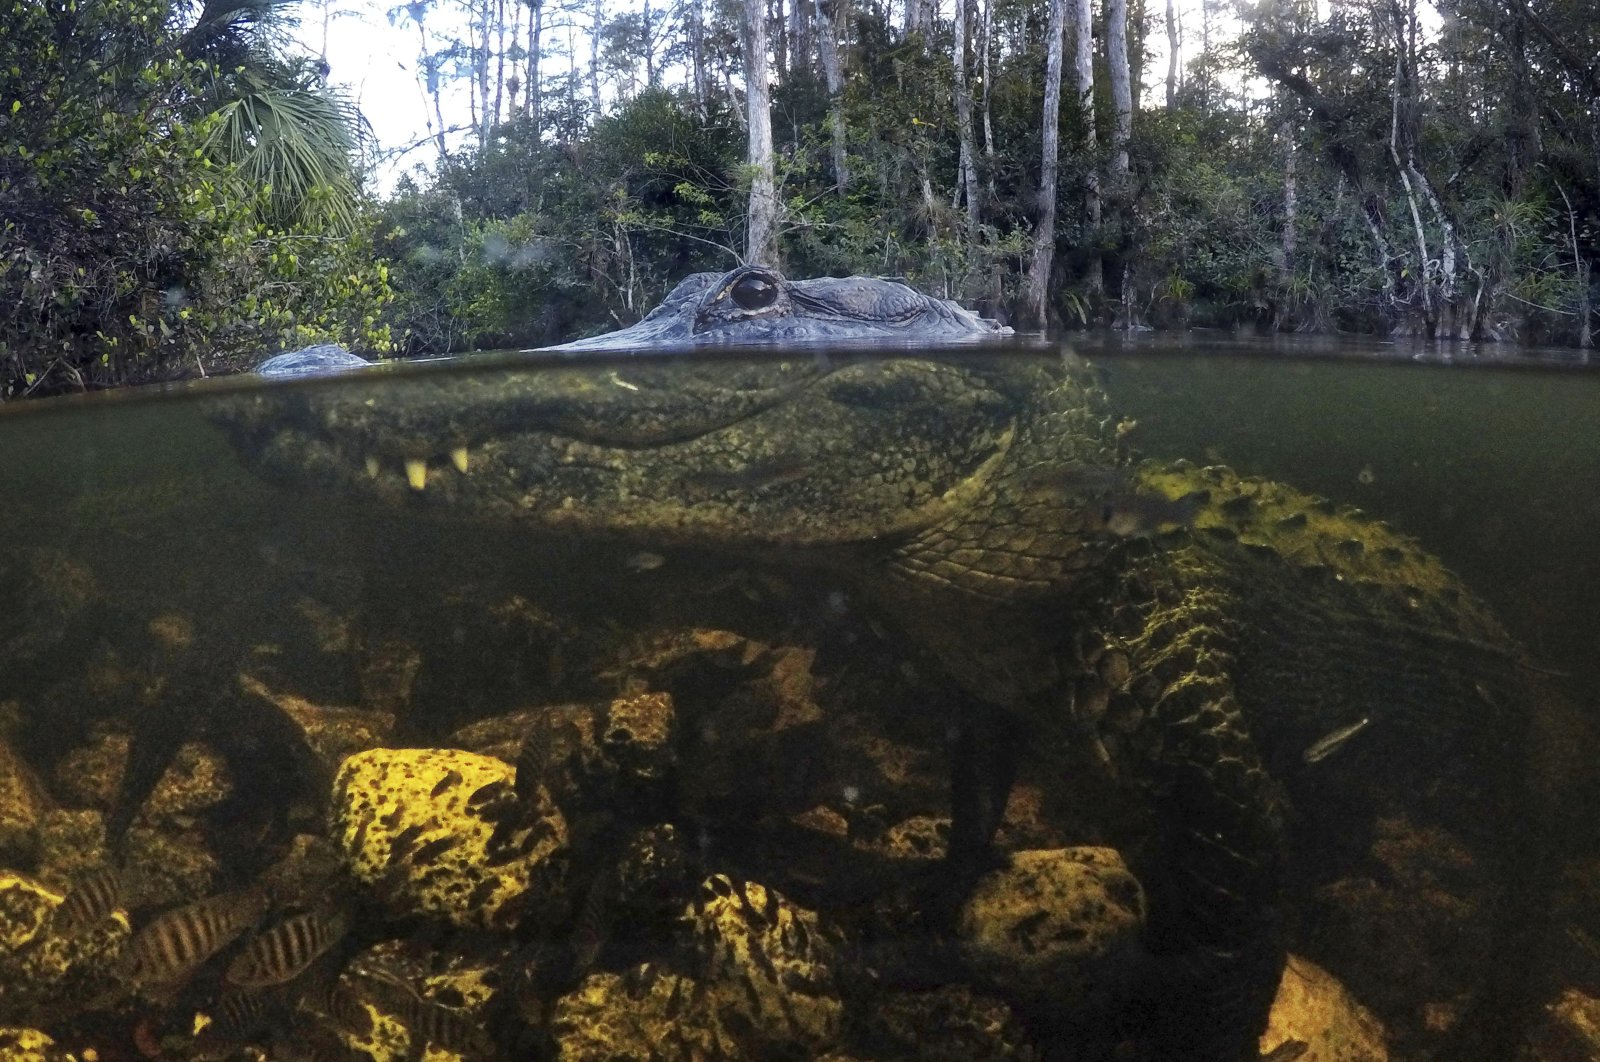 An alligator prowls the waters in the Big Cypress National Preserve in Florida, Oct. 30, 2019. (AP Photo)